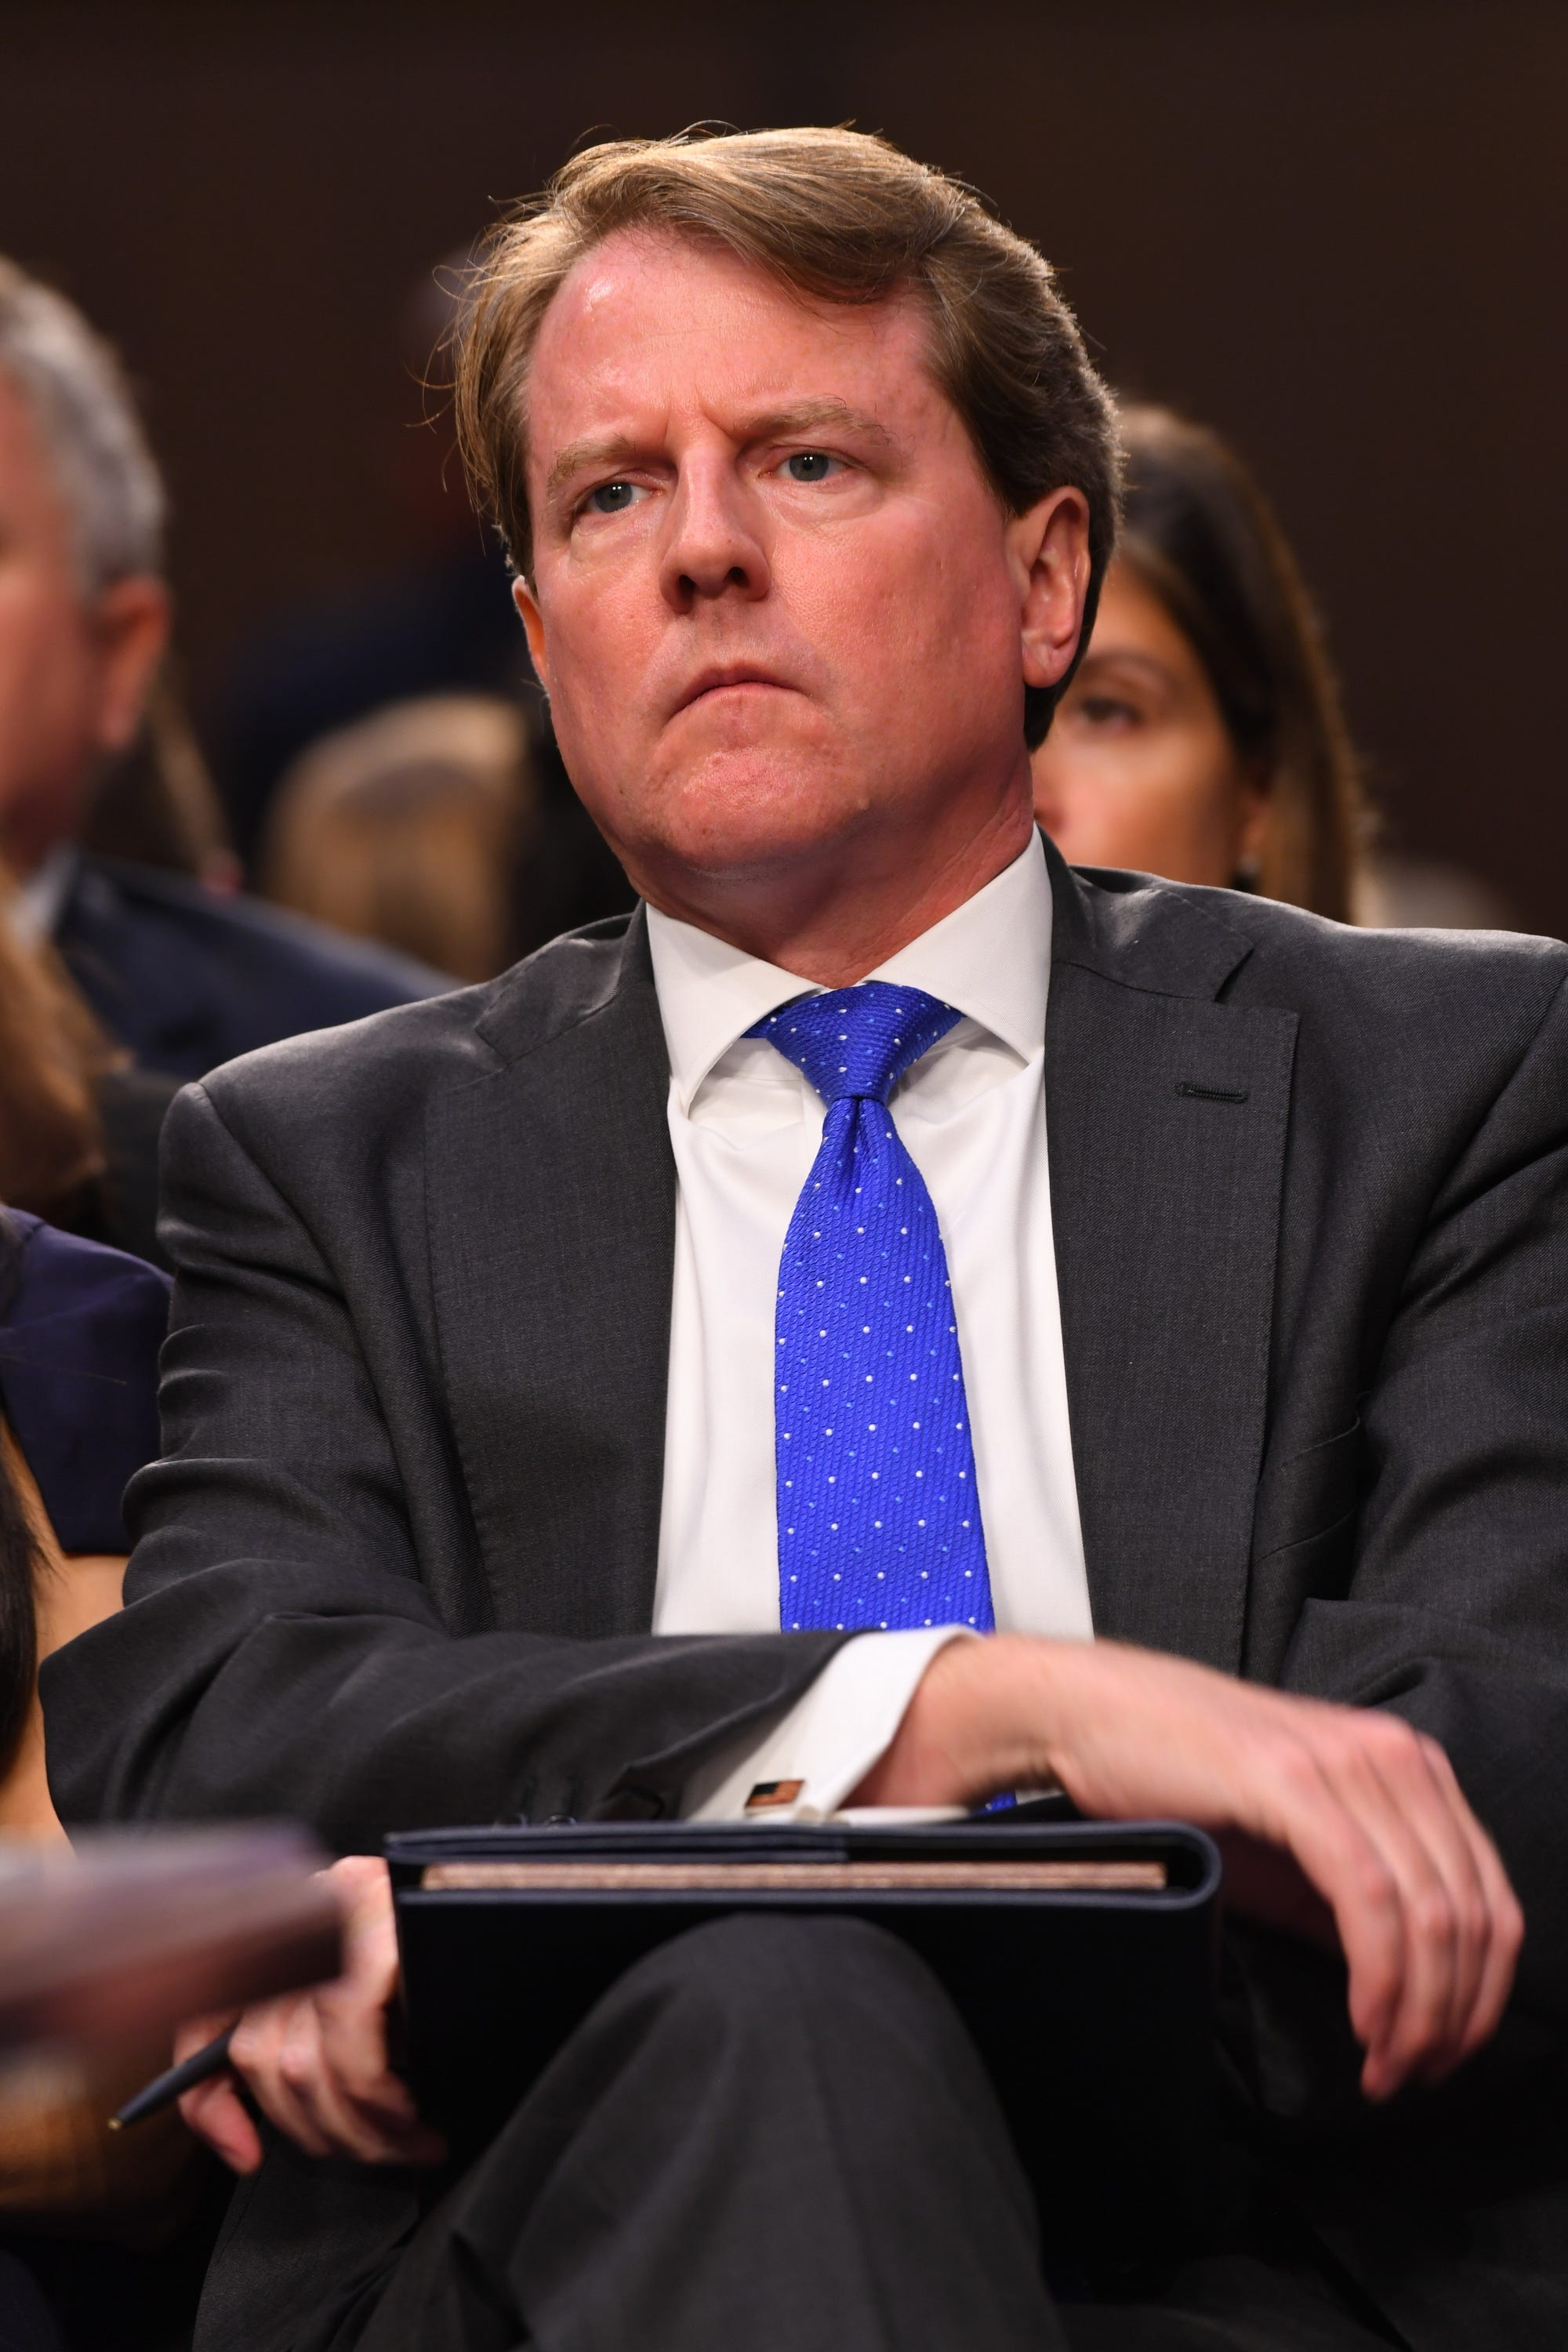 Trump Justice Department subpoenaed info from White House counsel Don McGahn s Apple account: report